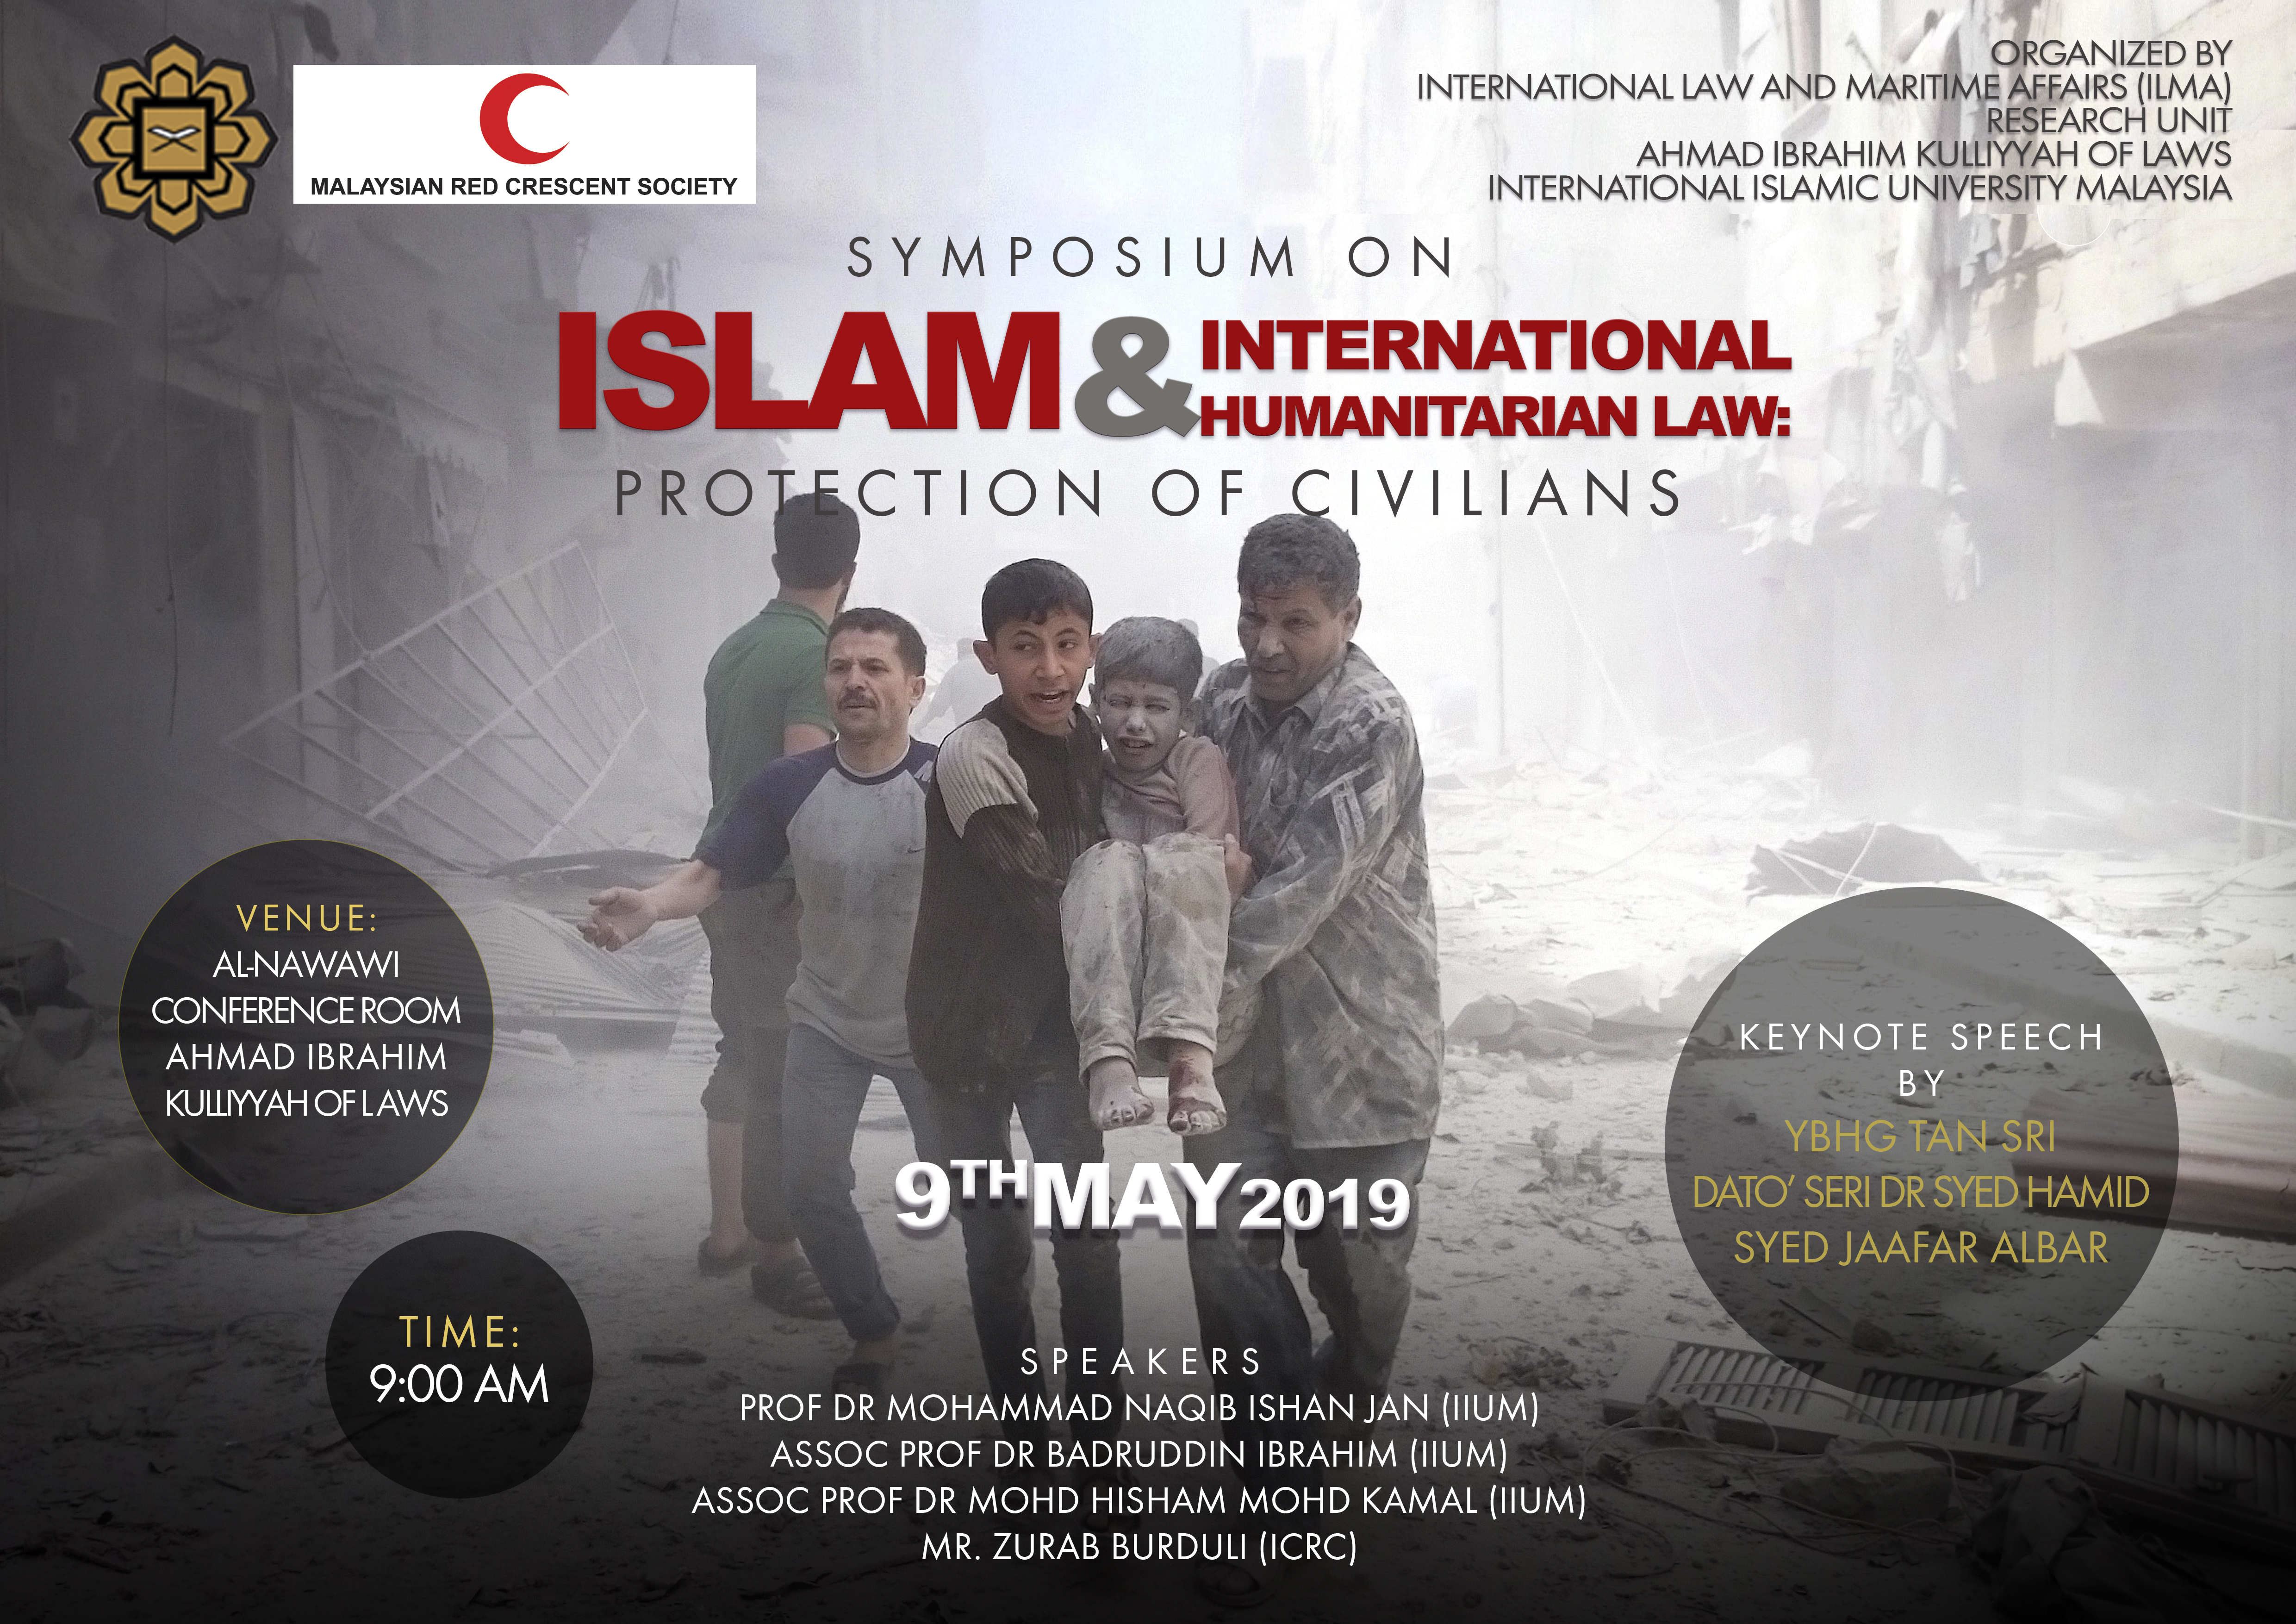 Symposium on Islam & International Humanitarian Law: Protection of Civilians